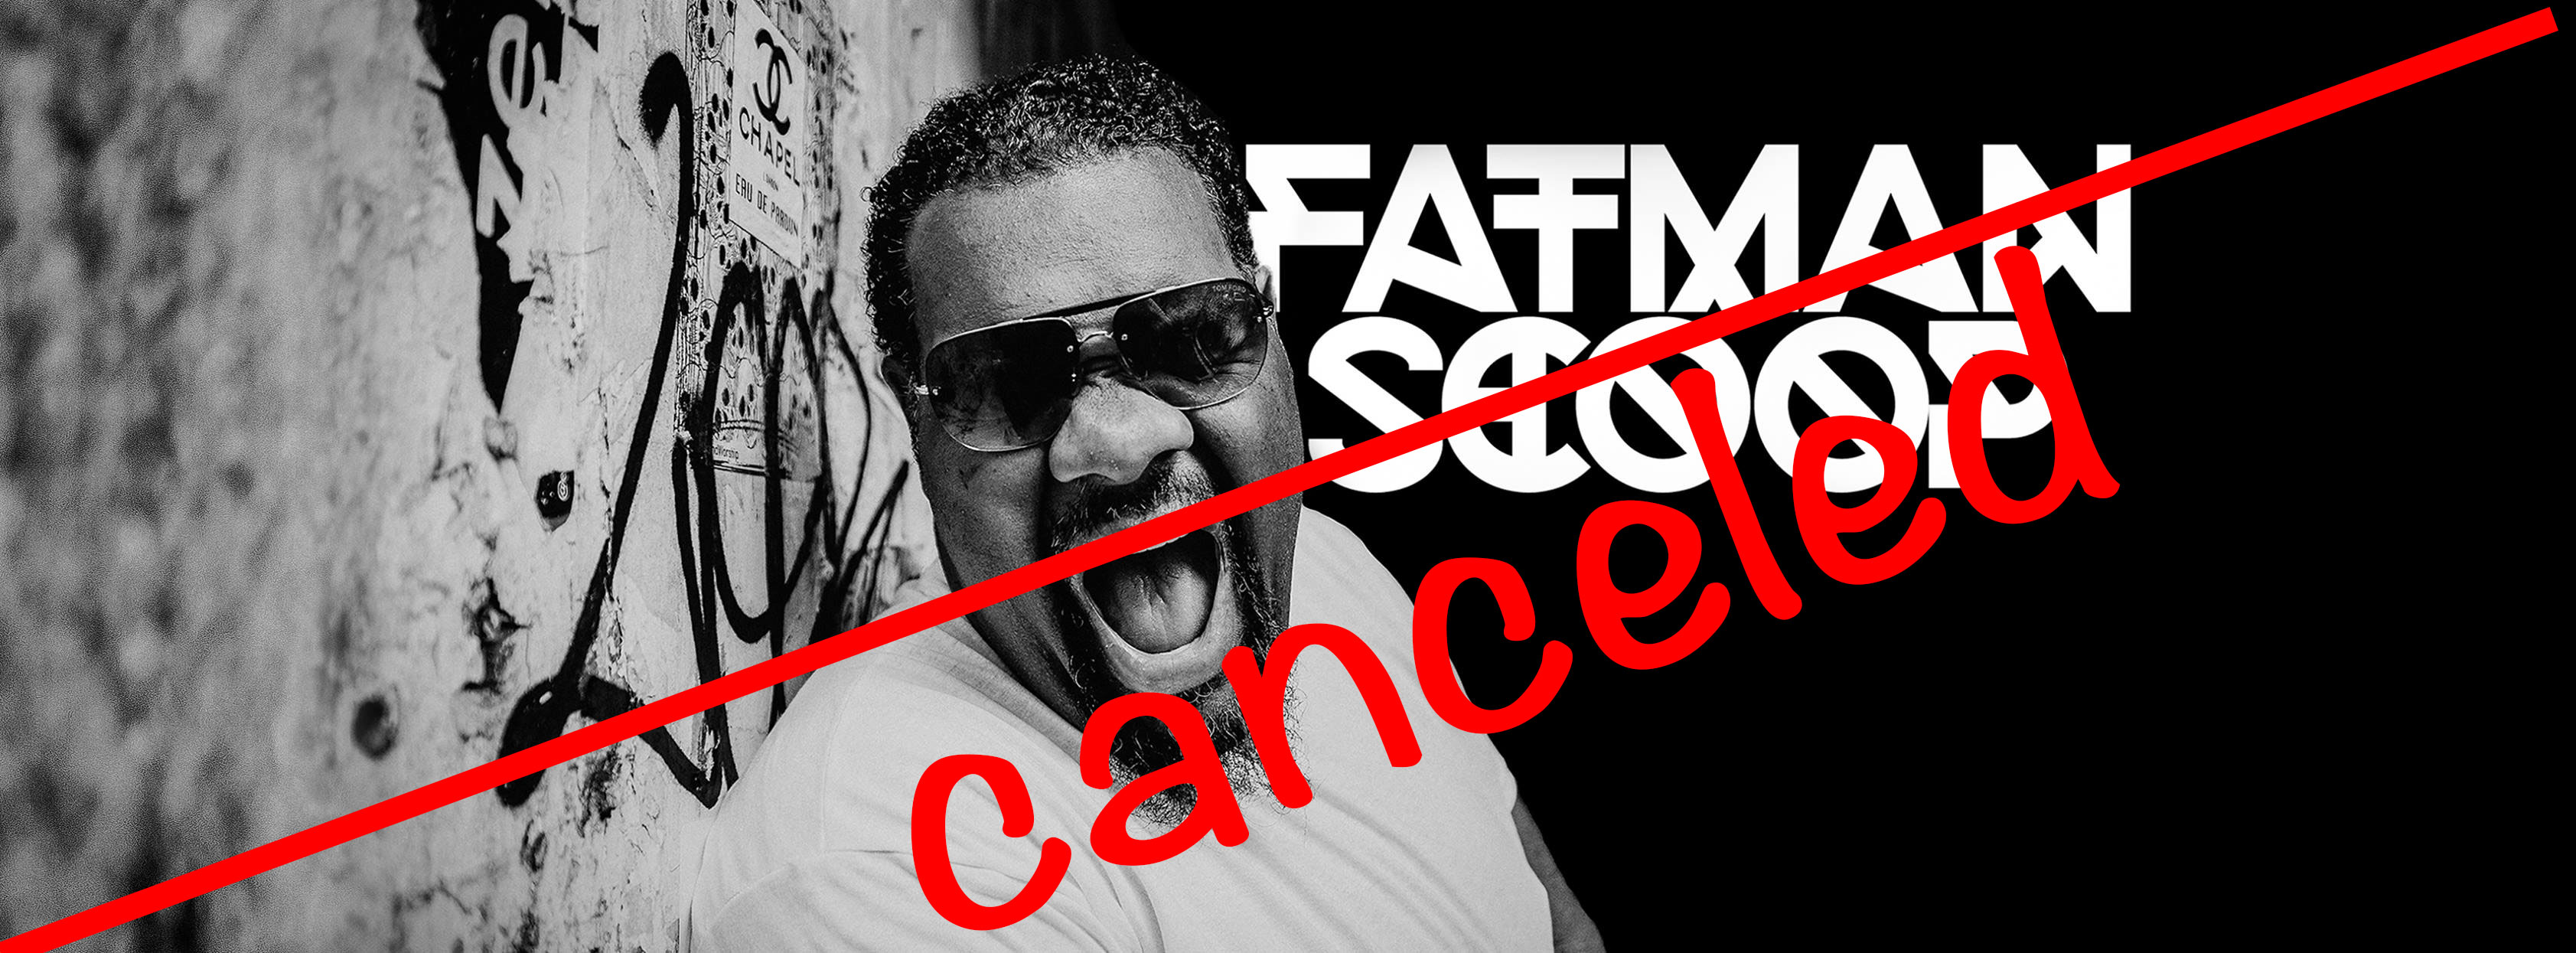 Fat Man Scoop FB Banner canceled